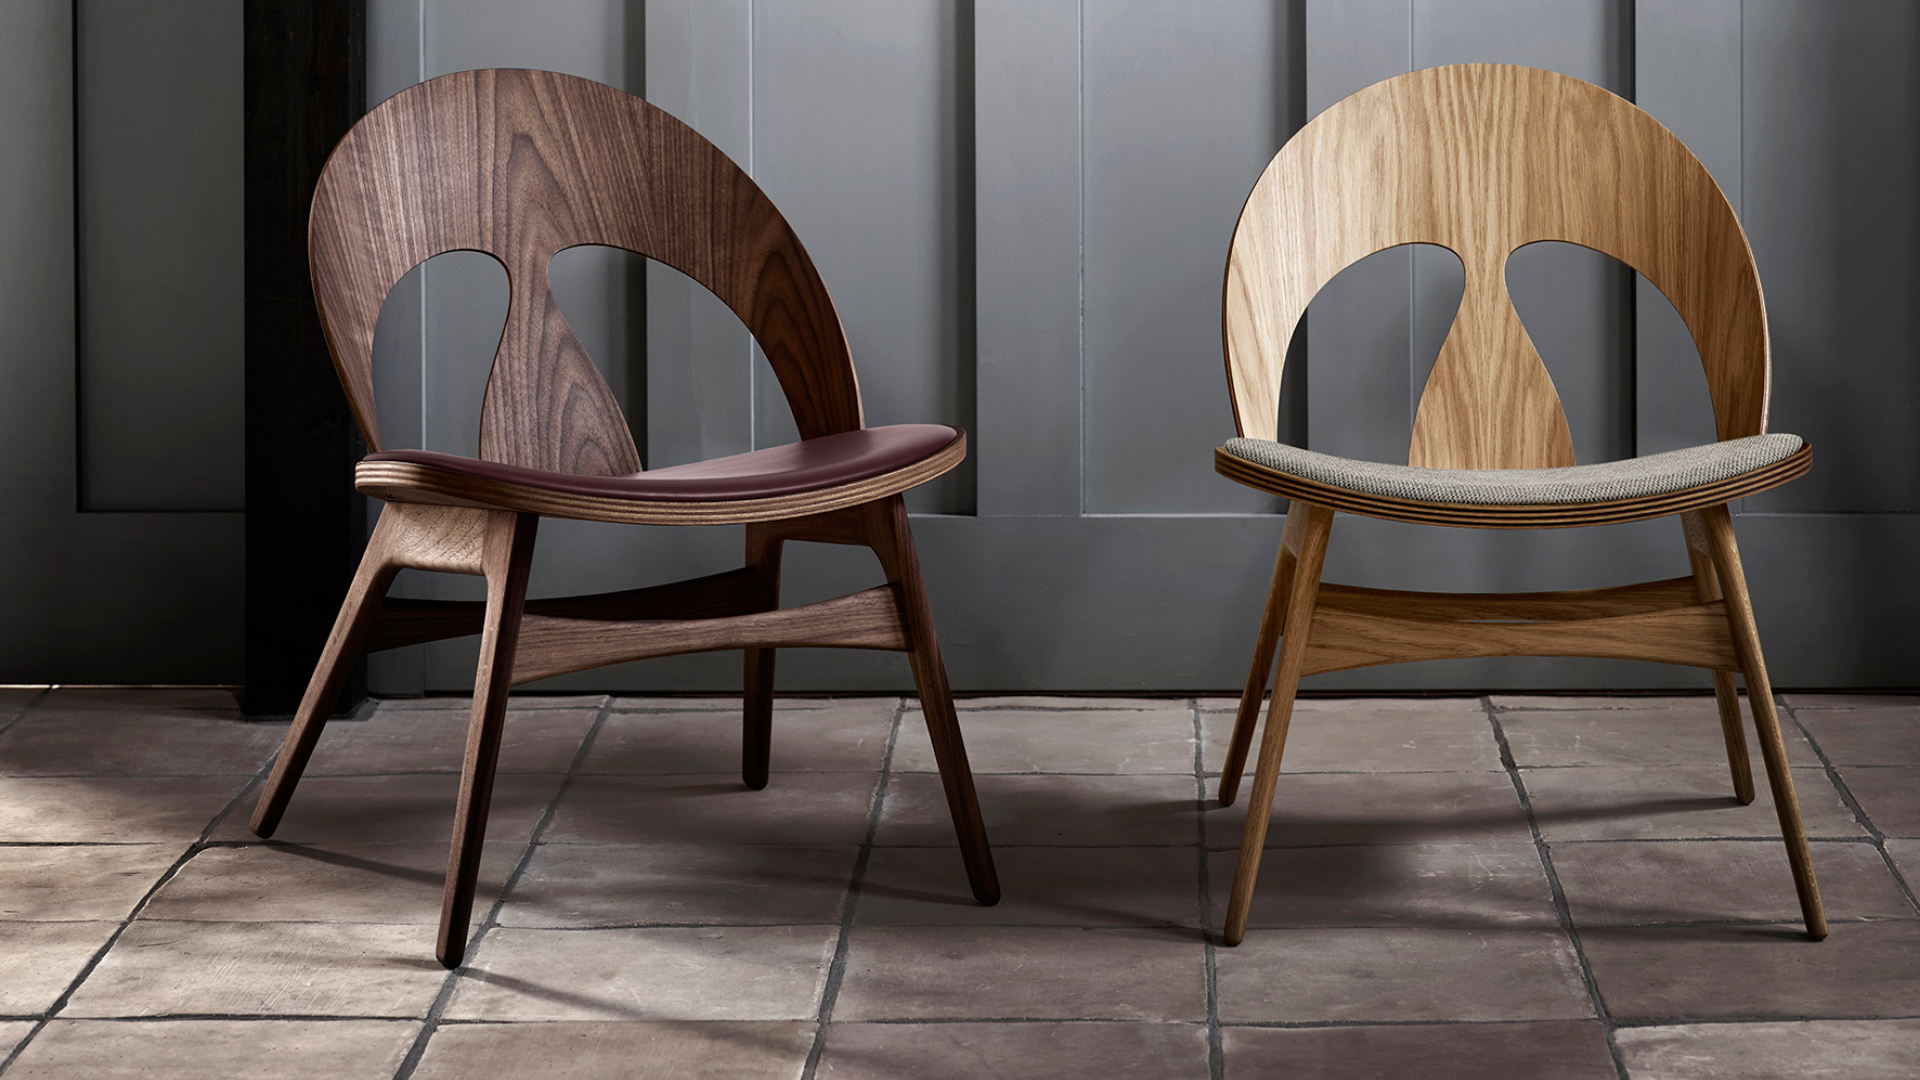 The Contour Chair (model number BM0949), first designed by Danish designer Børge Mogensen is manufactured in oak, walnut and a combination of these two wood types with various finishes | Contour chair by Børge Mogensen for Carl Hansen & Son | STIR